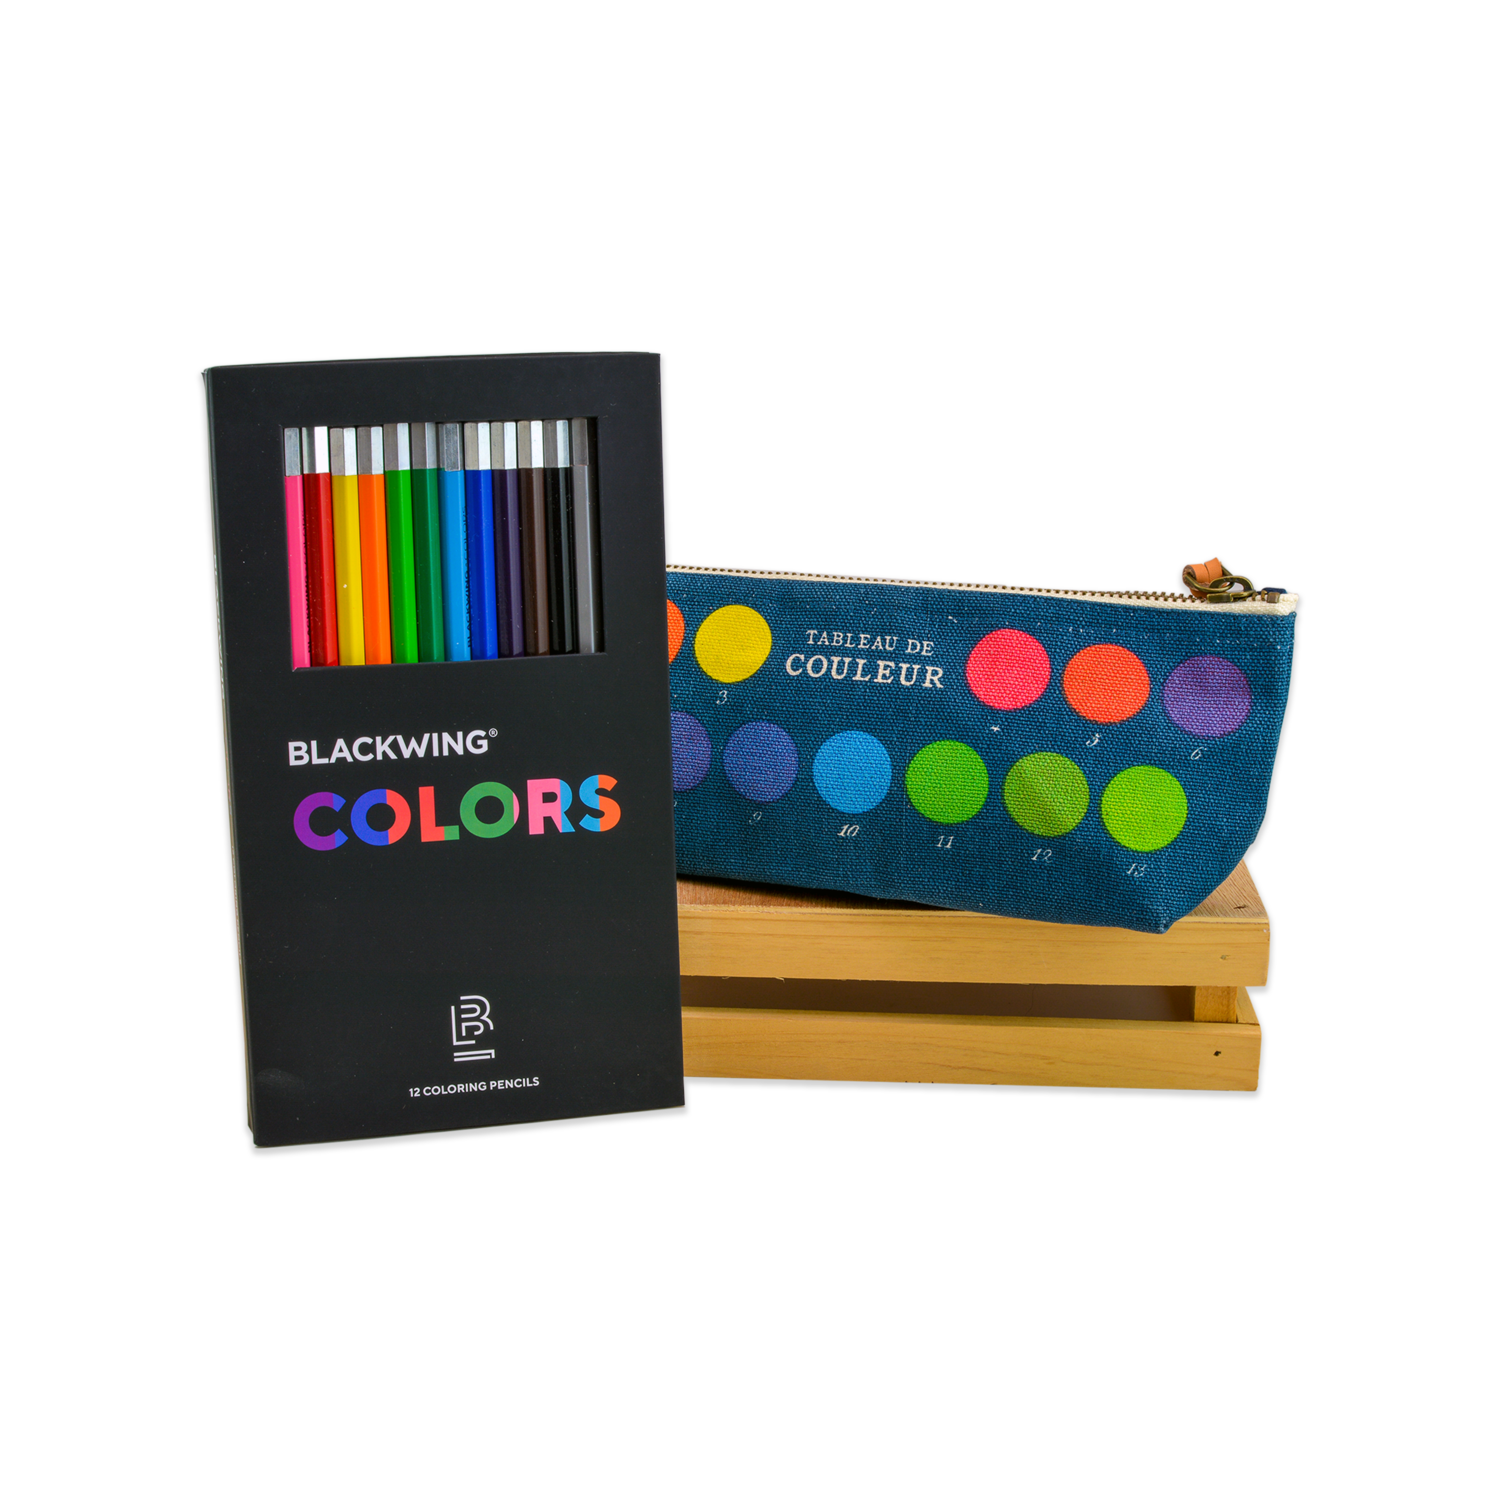 Blackwing Colors Pencils with Zip Pouch